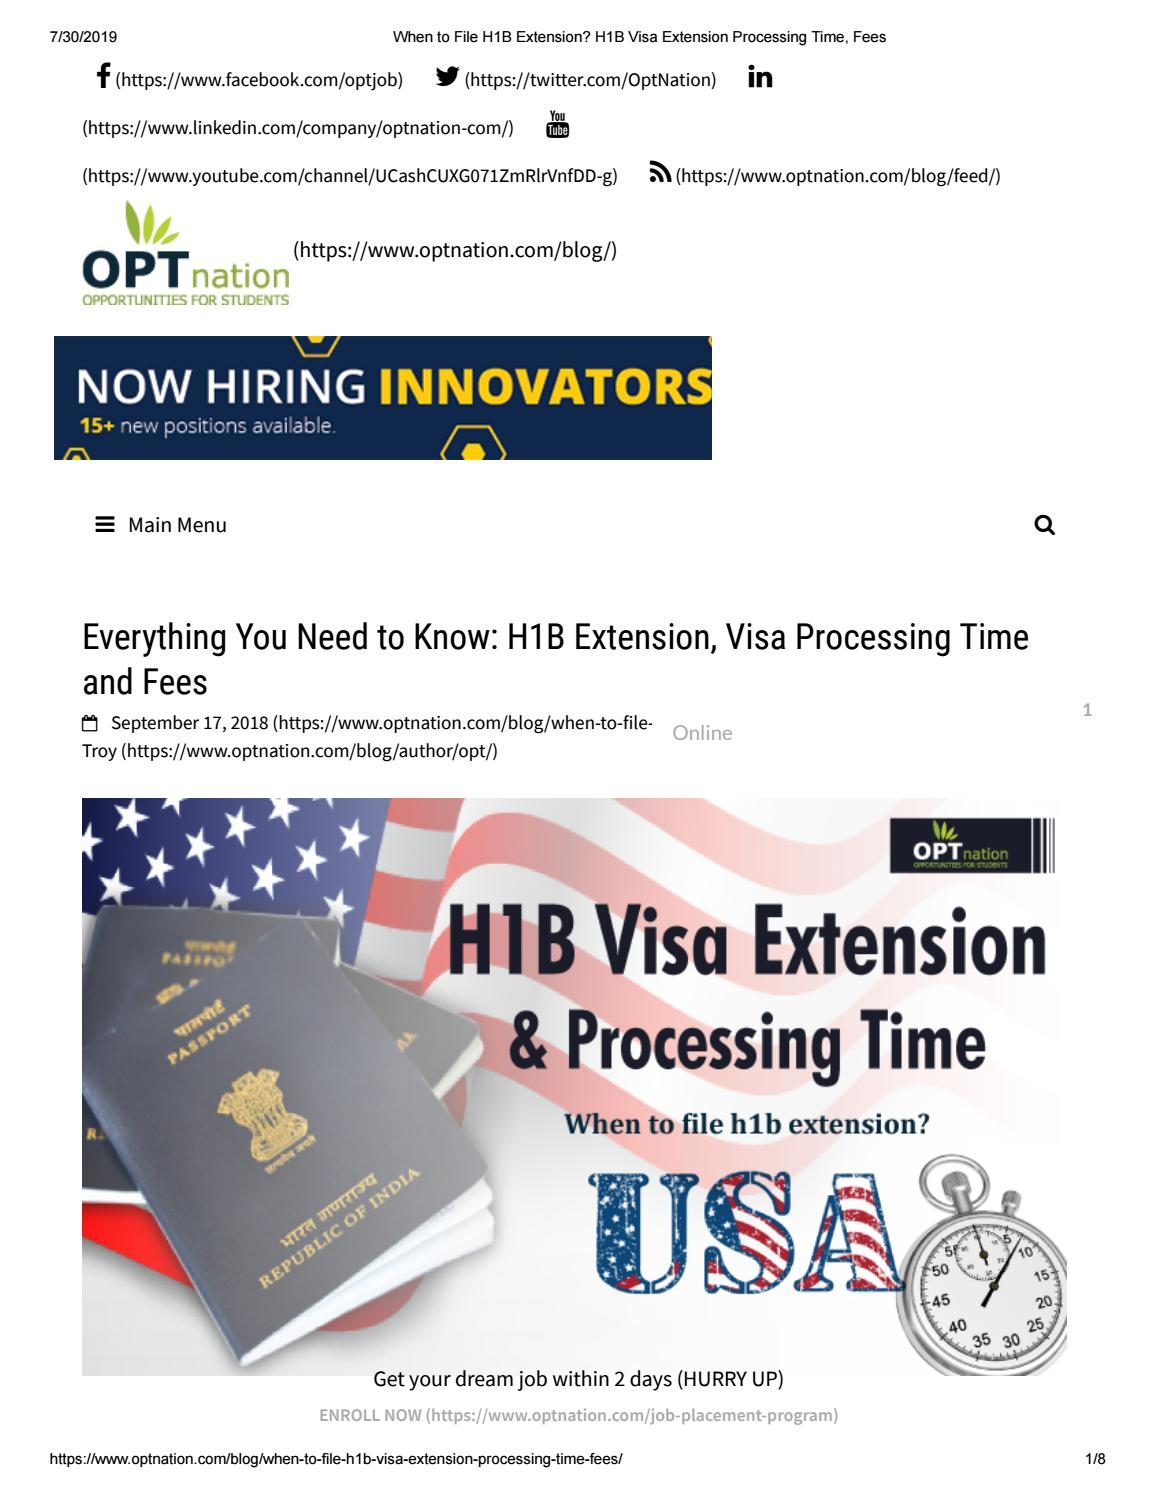 H1b Extension Processing Time 2019 - OPTnation by